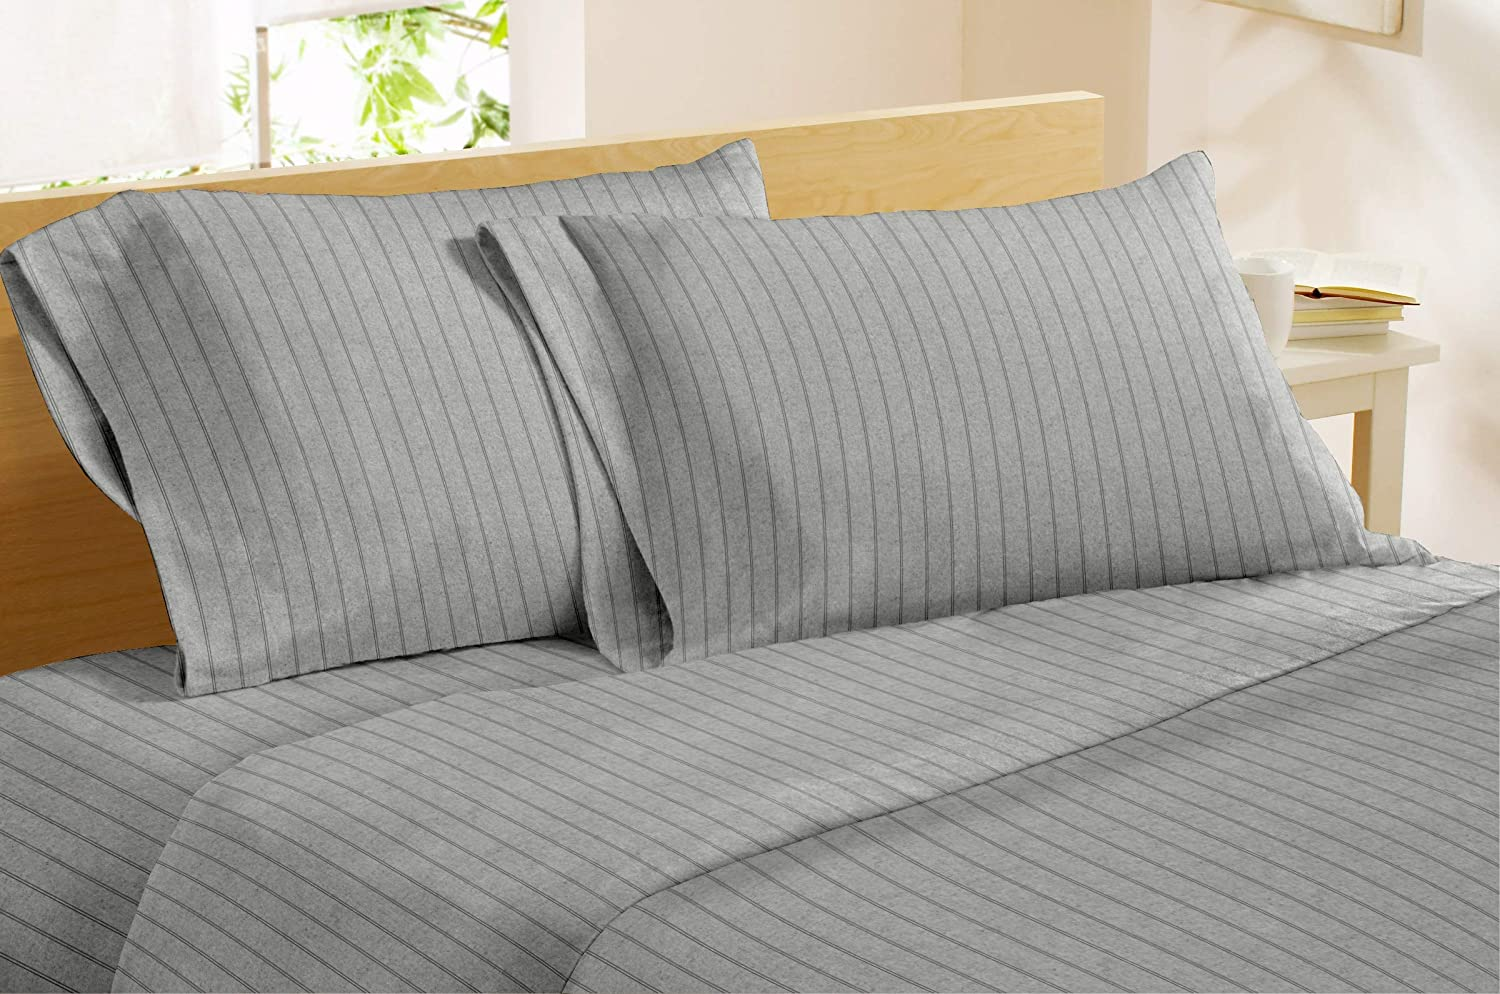 Amazon Com Dormisette Luxury German Flannel Sheets Pillowcases Set 4 Piece King Heather Grey Pinstripe Kitchen Dining